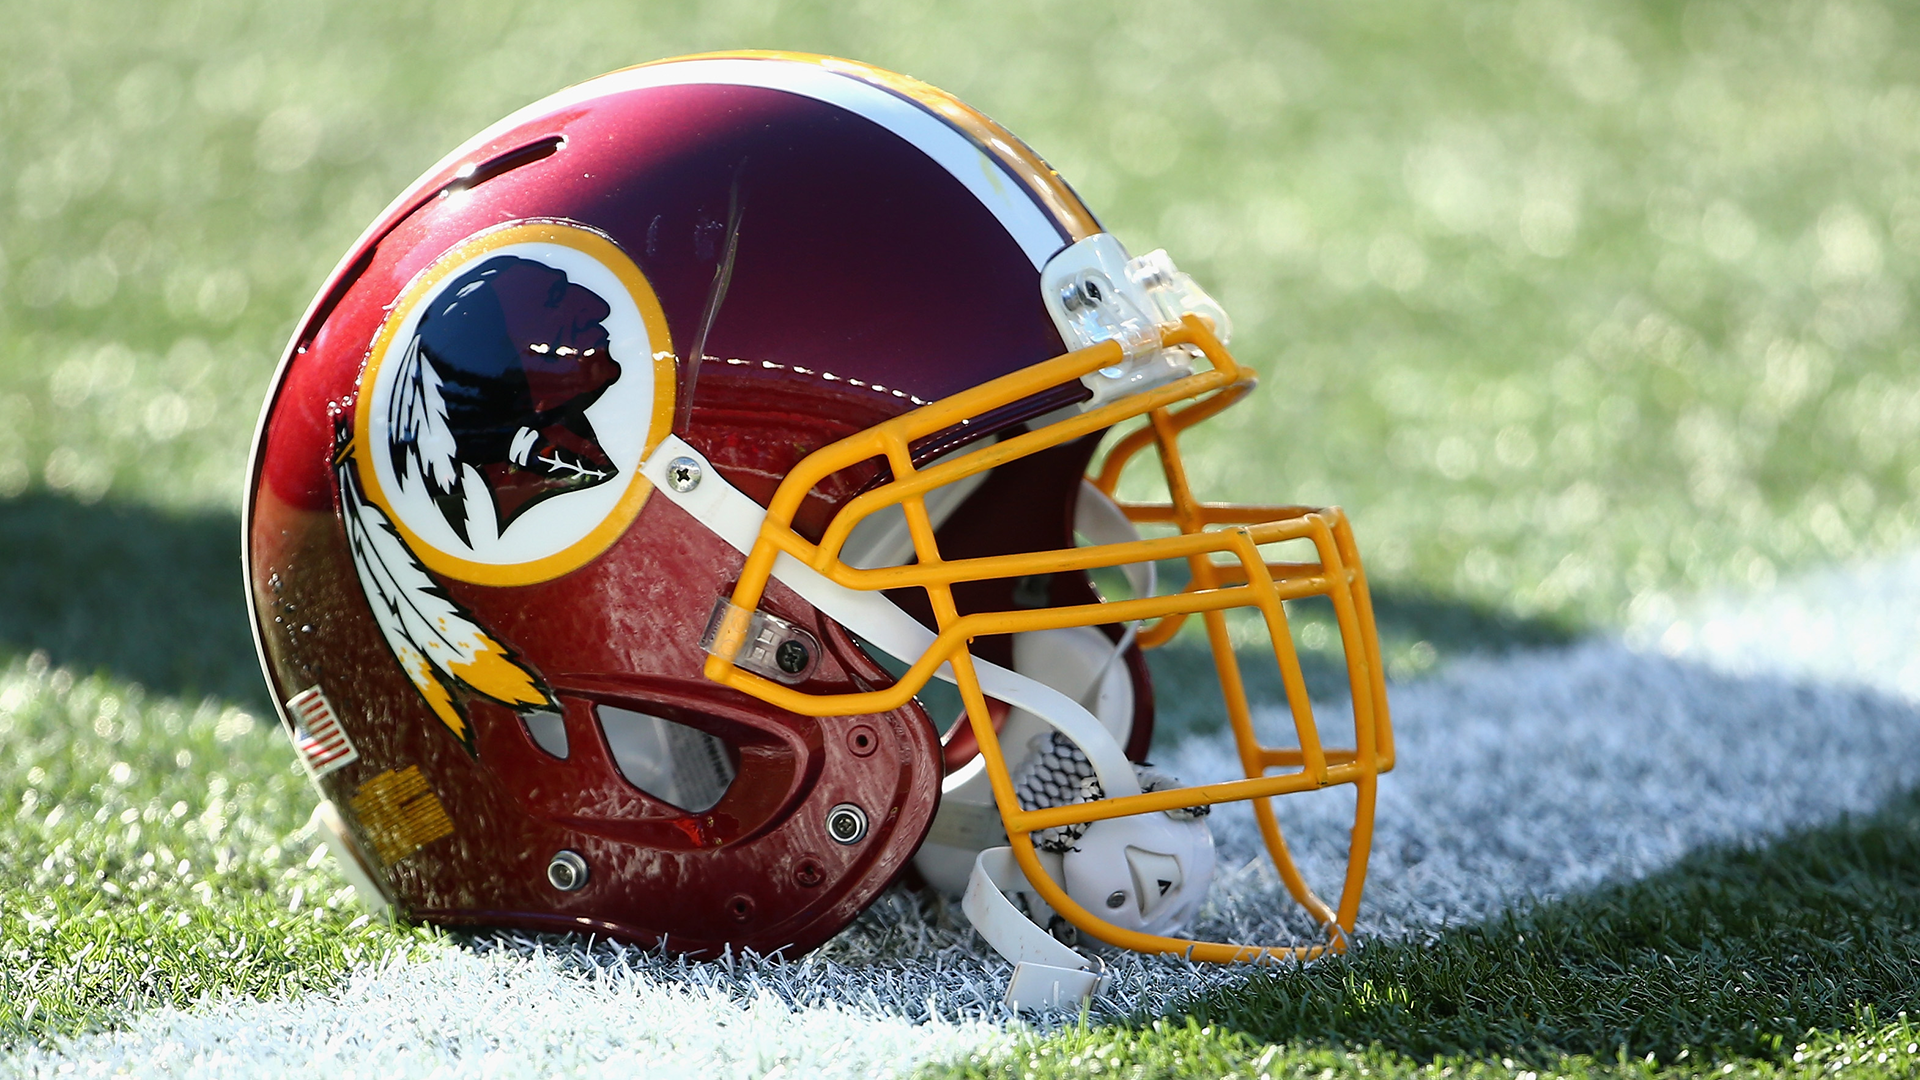 A clear favorite is emerging to replace Redskins as Washington's new team name 1